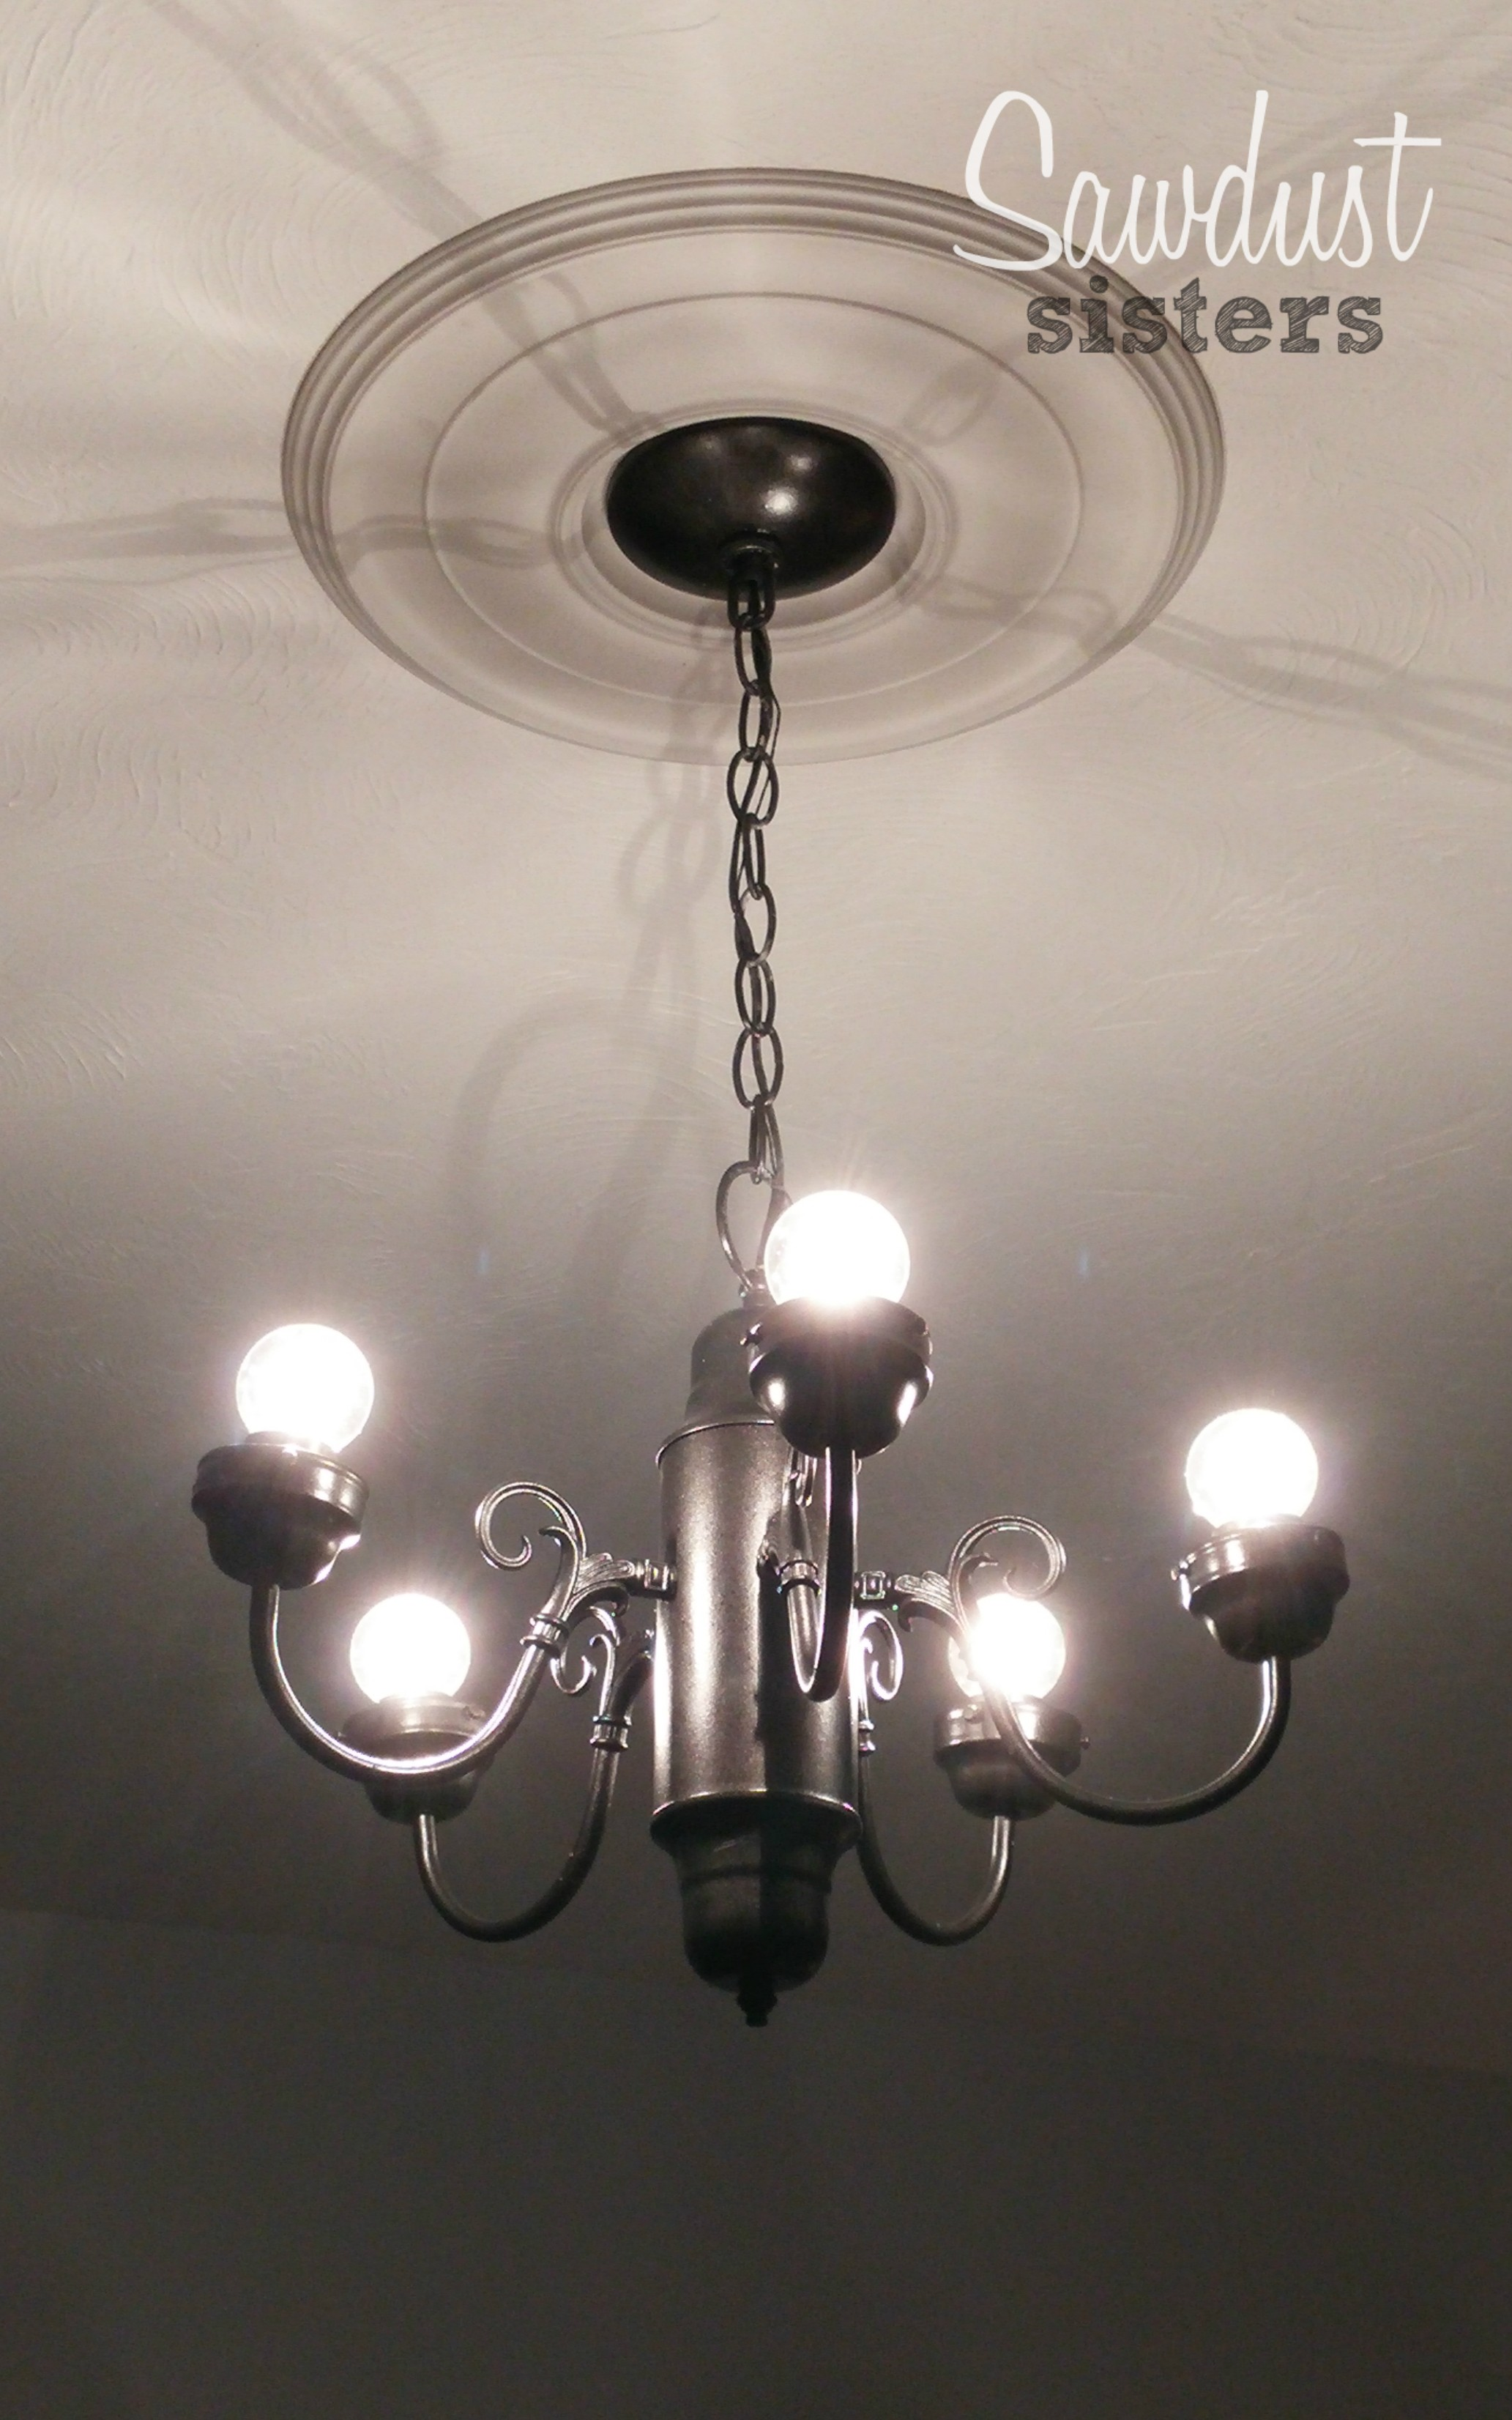 Diy simple chandelier makeover sawdust sisters simple 5 chandelier gets a makeover aloadofball Image collections